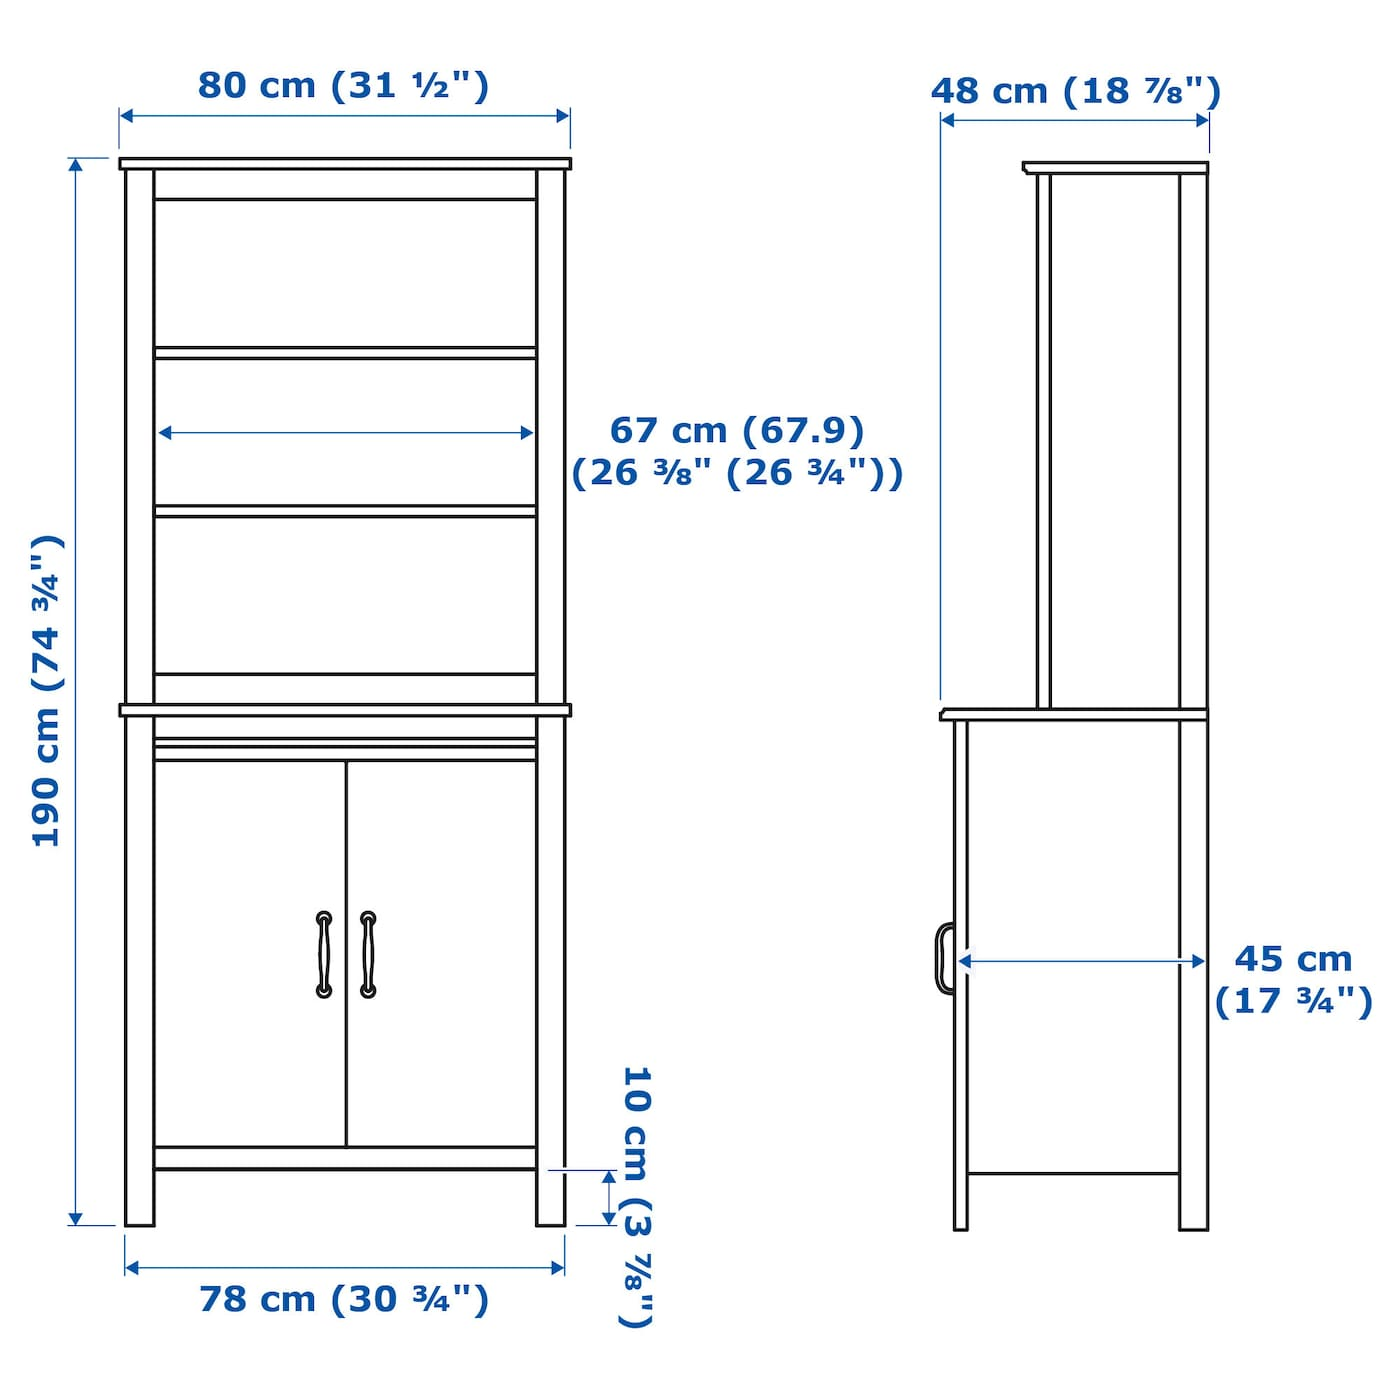 IKEA BRUSALI high cabinet with door Adjustable shelves, so you can customise your storage as needed.